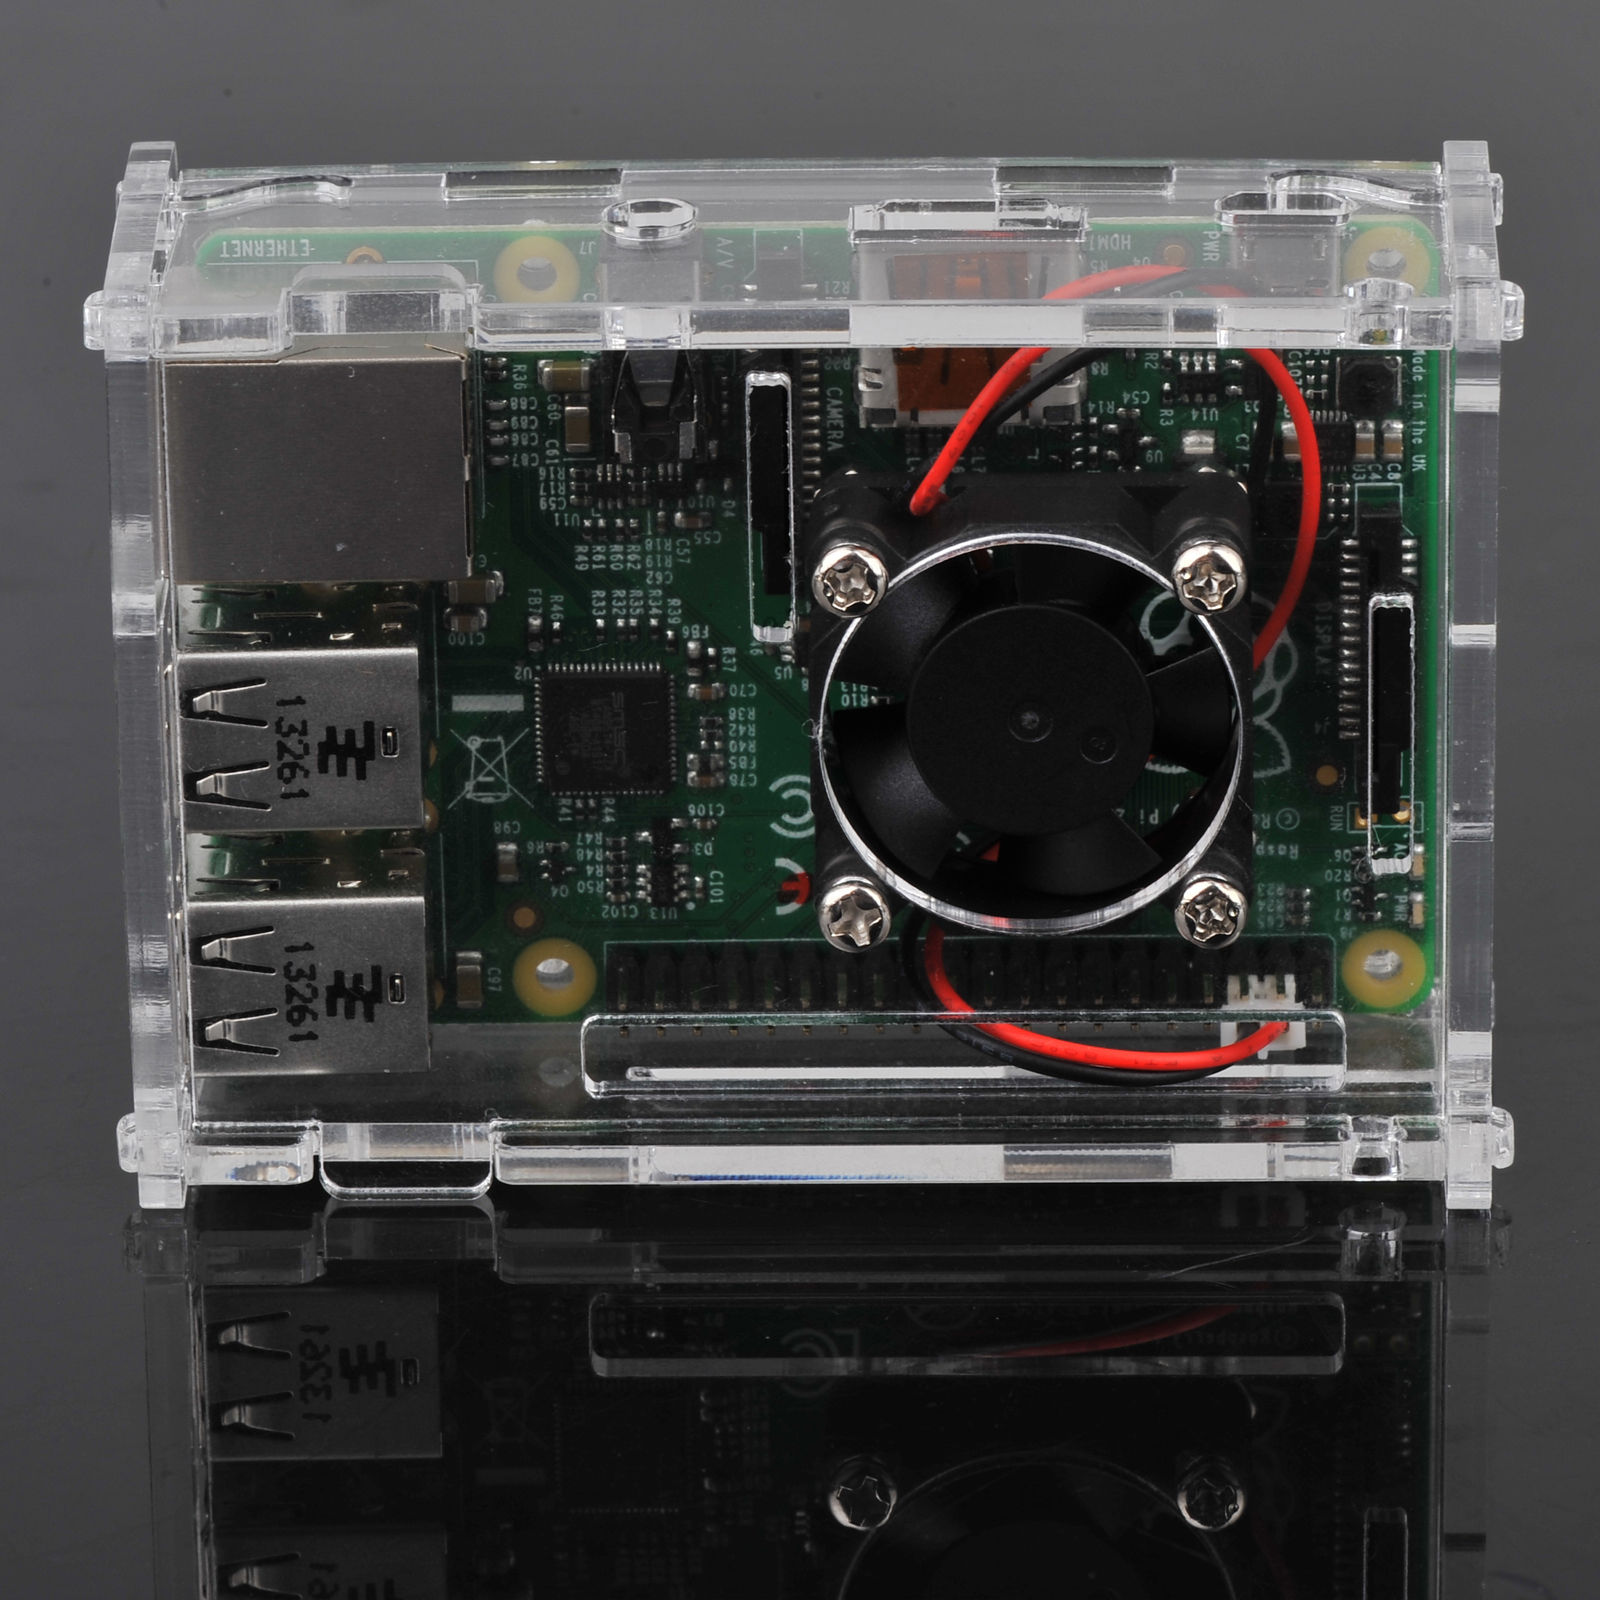 Clear-Acrylic-Case-Shell-Enclosure-Box-Cooling-Fan-For-Raspberry-Pi-2-3-B thumbnail 11